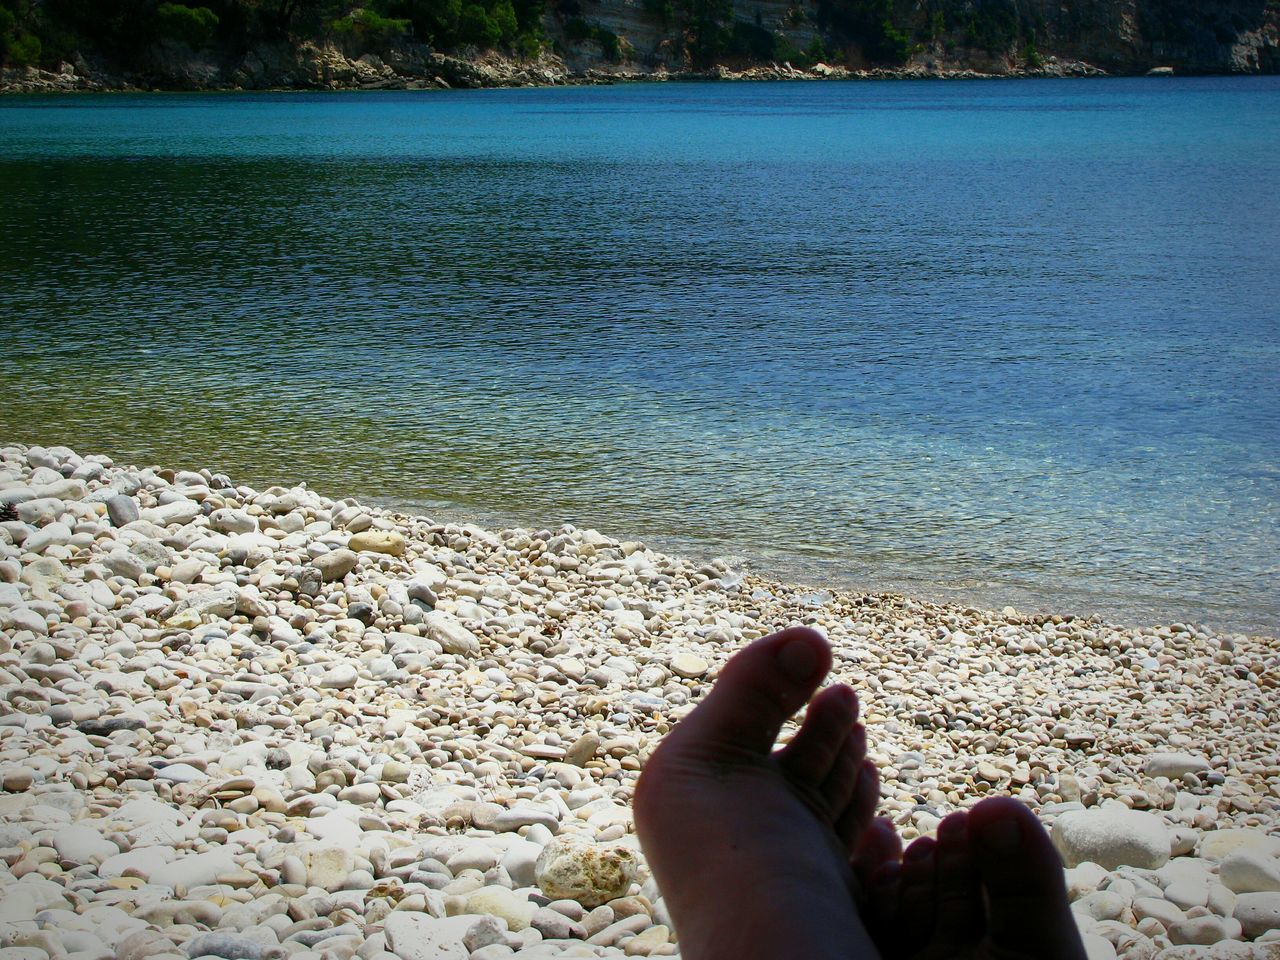 Relaxing Beach Beach Photography Blue Sea Greek Islands Water Human Body Part Human Leg Lifestyles Leisure Activity Nature Beauty In Nature Pebbles Pebble Beach Scenics Greece Sea Crystal Clear Waters